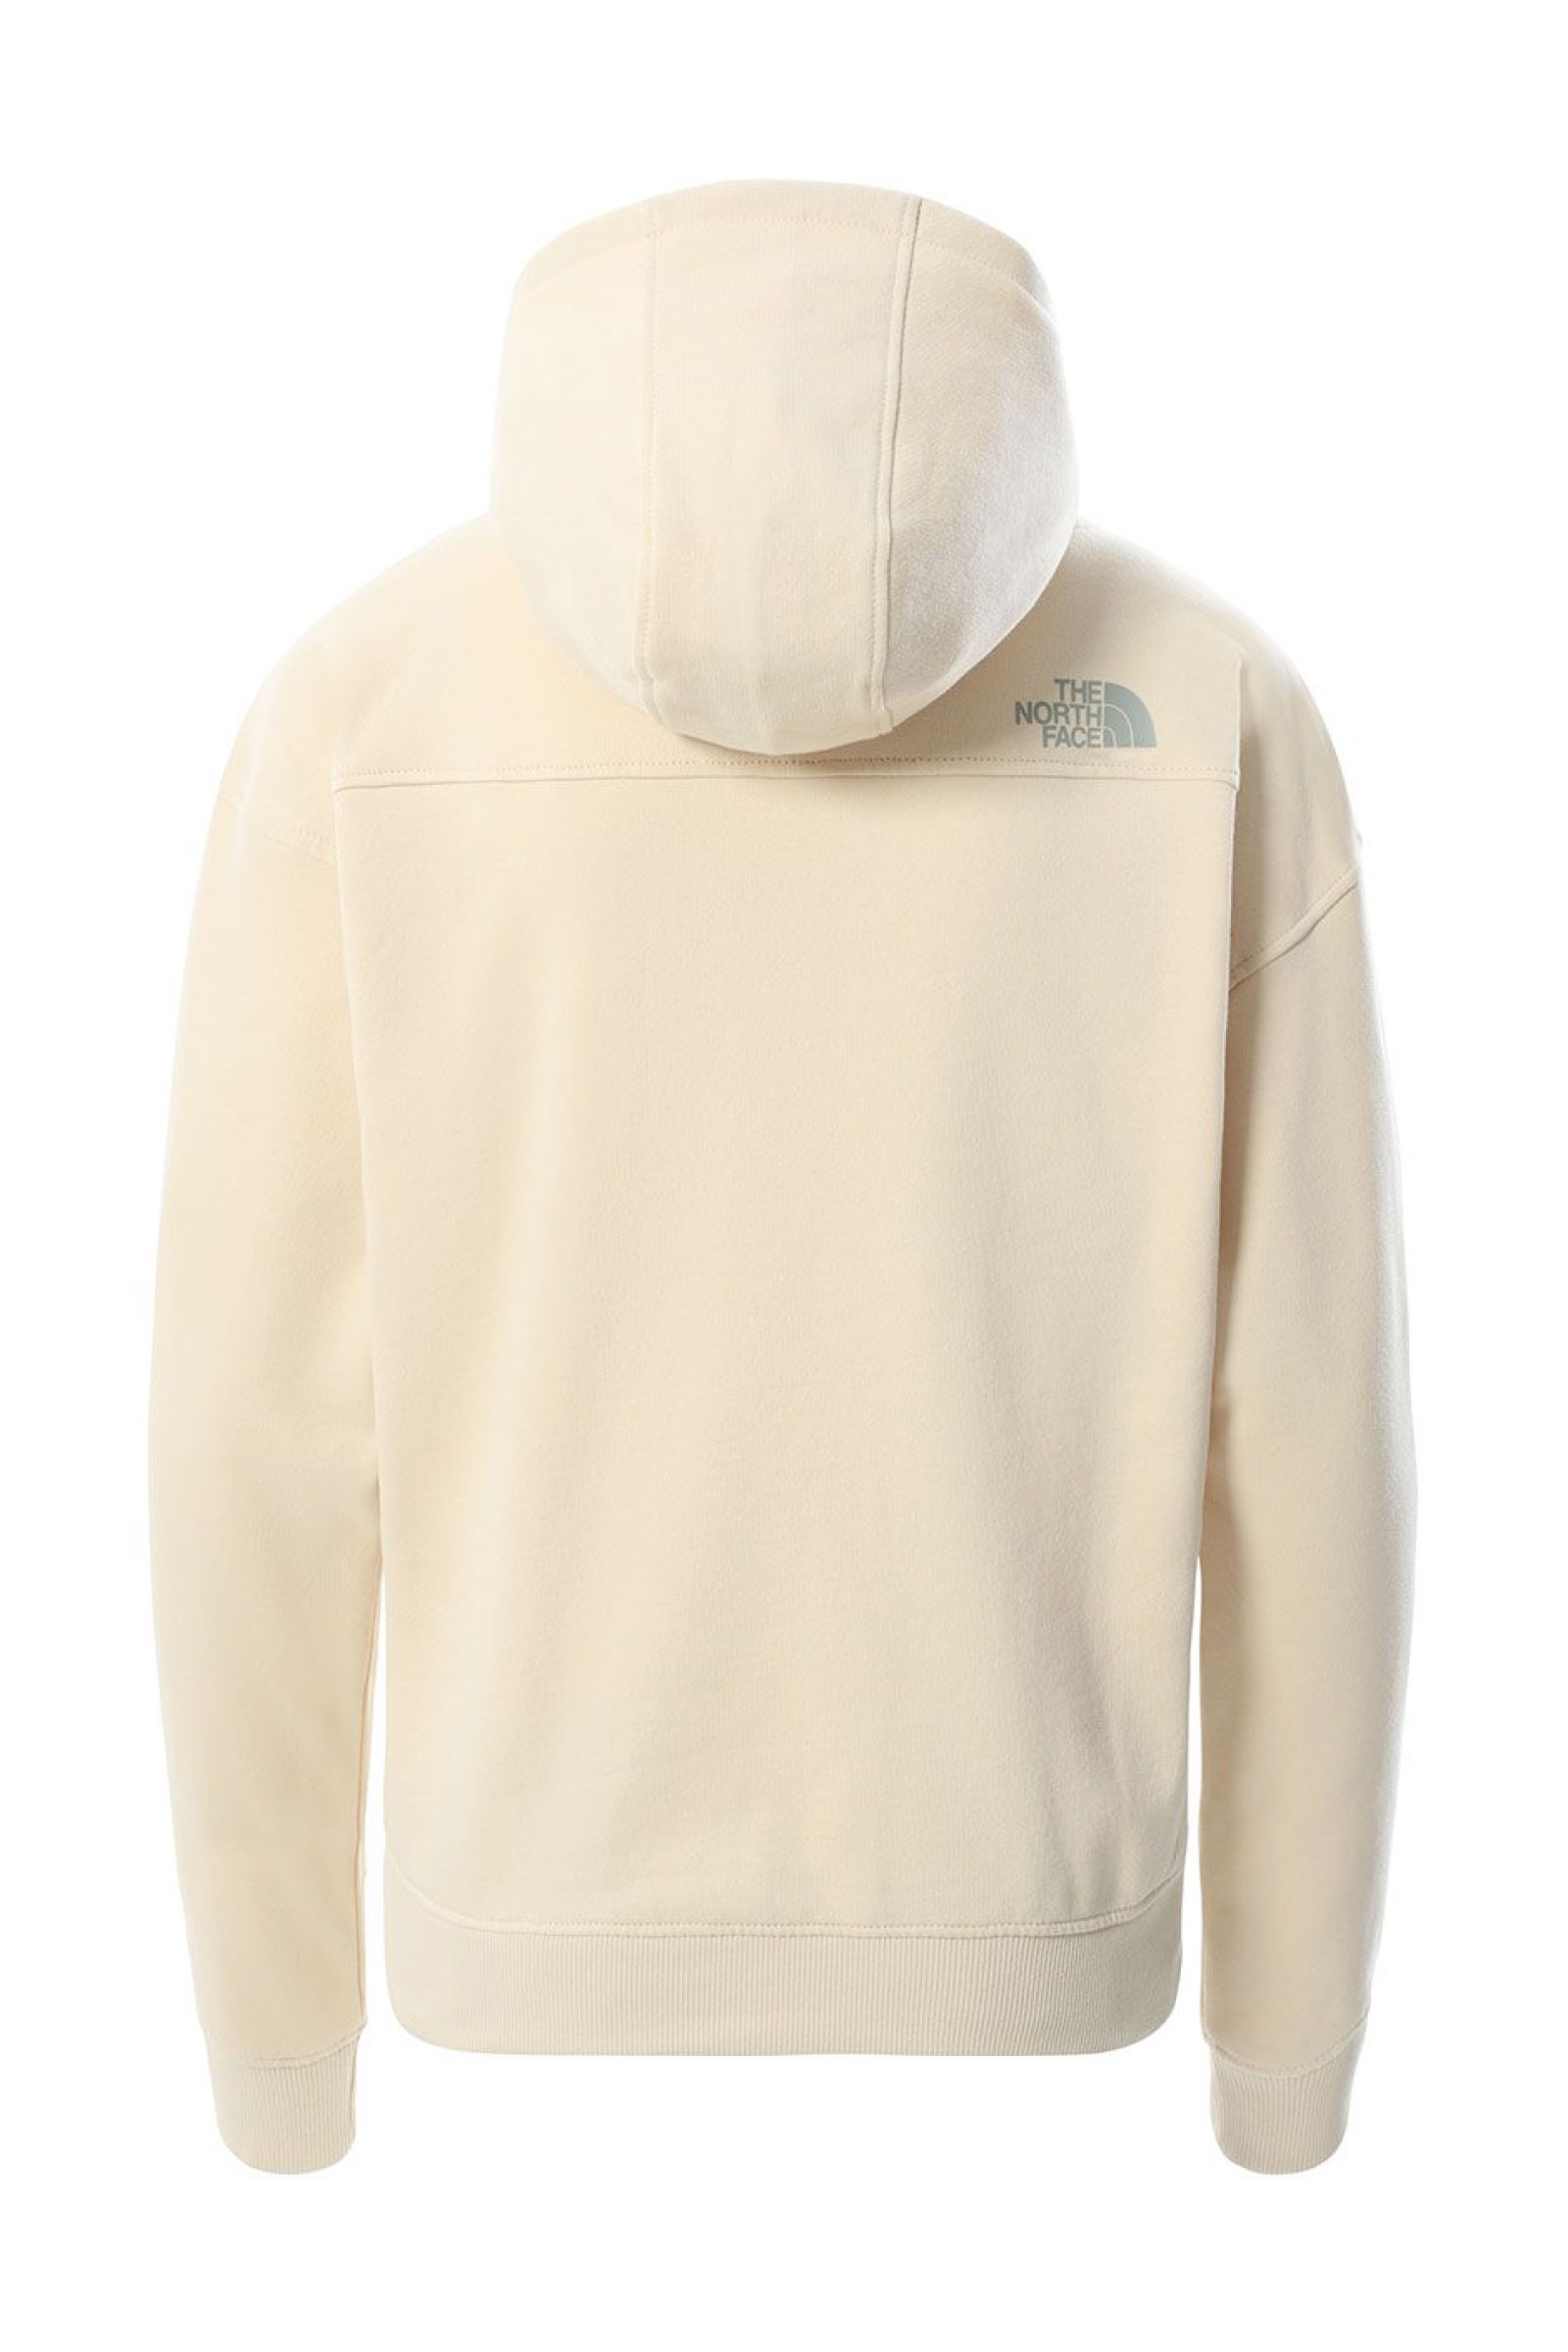 THE NORTH FACE | Sweatshirt | NF0A3RZ4RB61